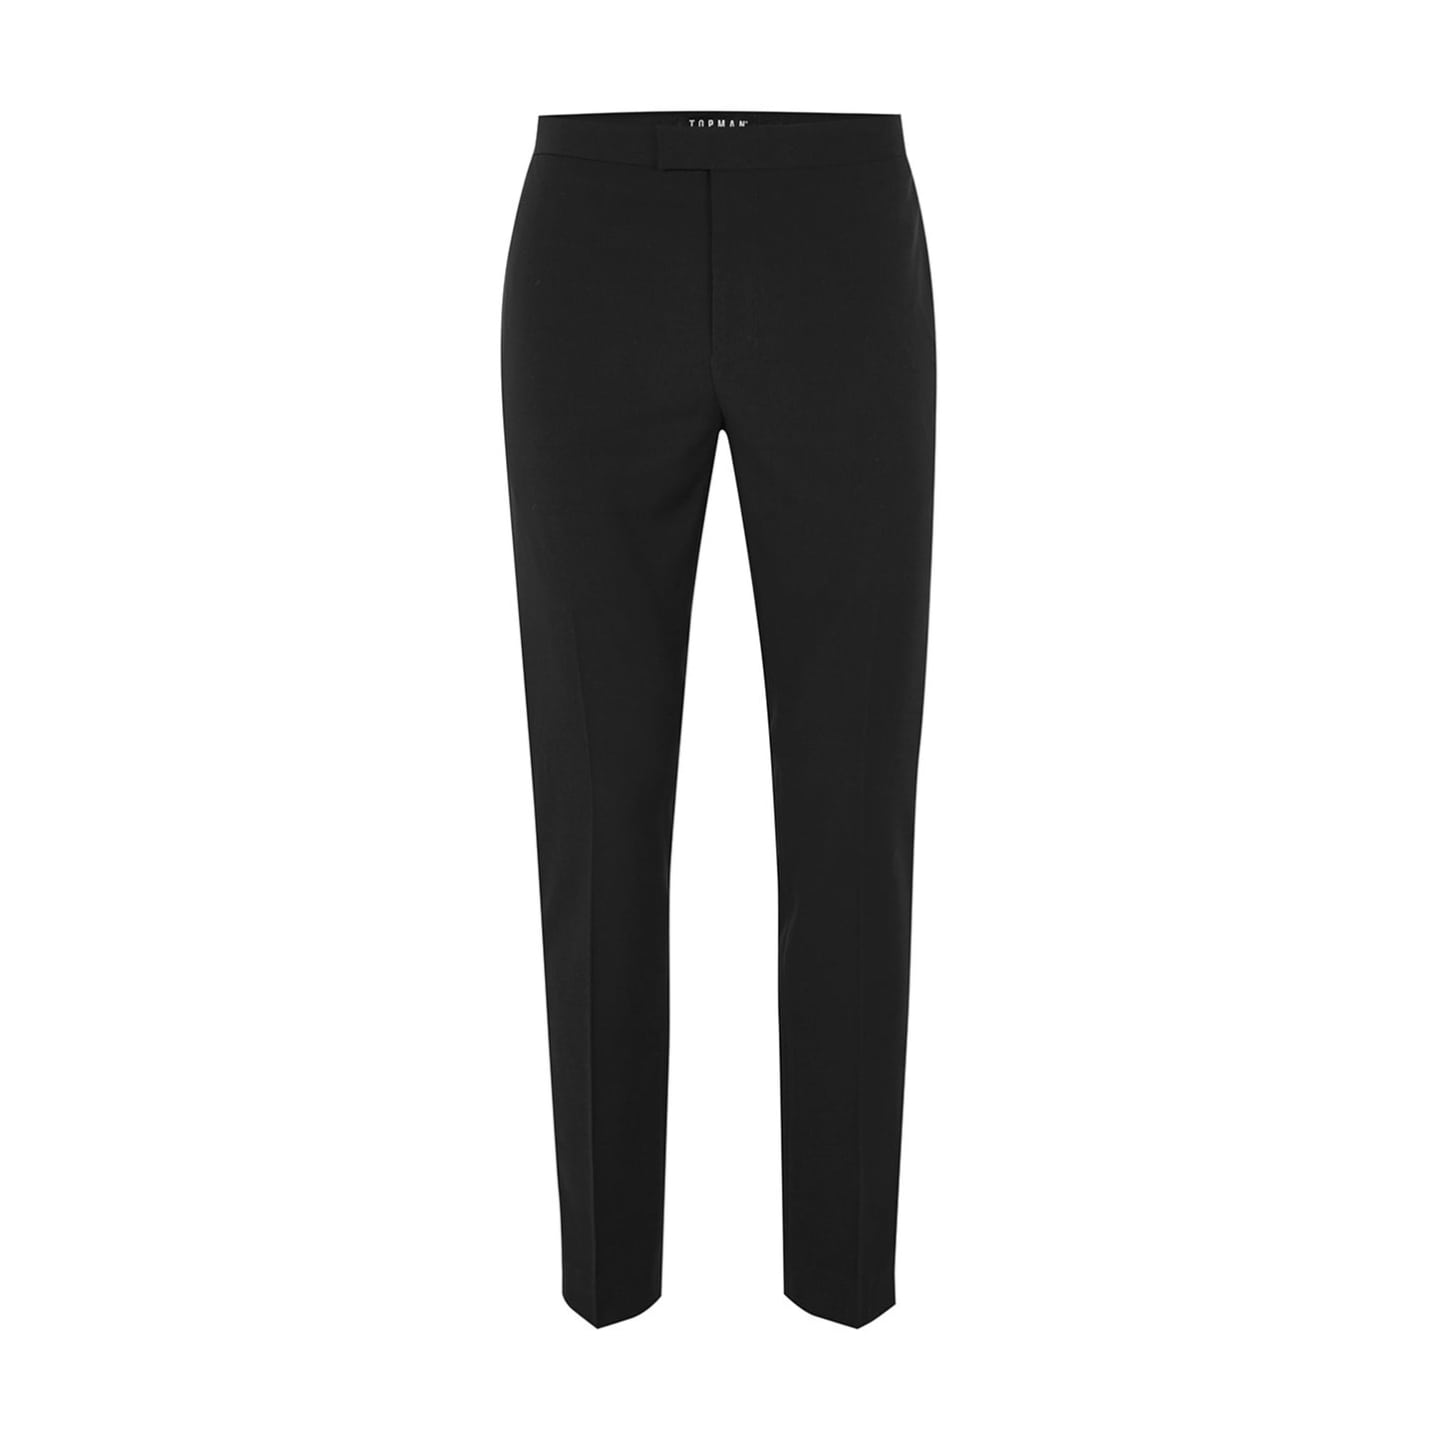 Topman Black Textured Skinny Tux Trousers - Stockpoint Apparel Outlet